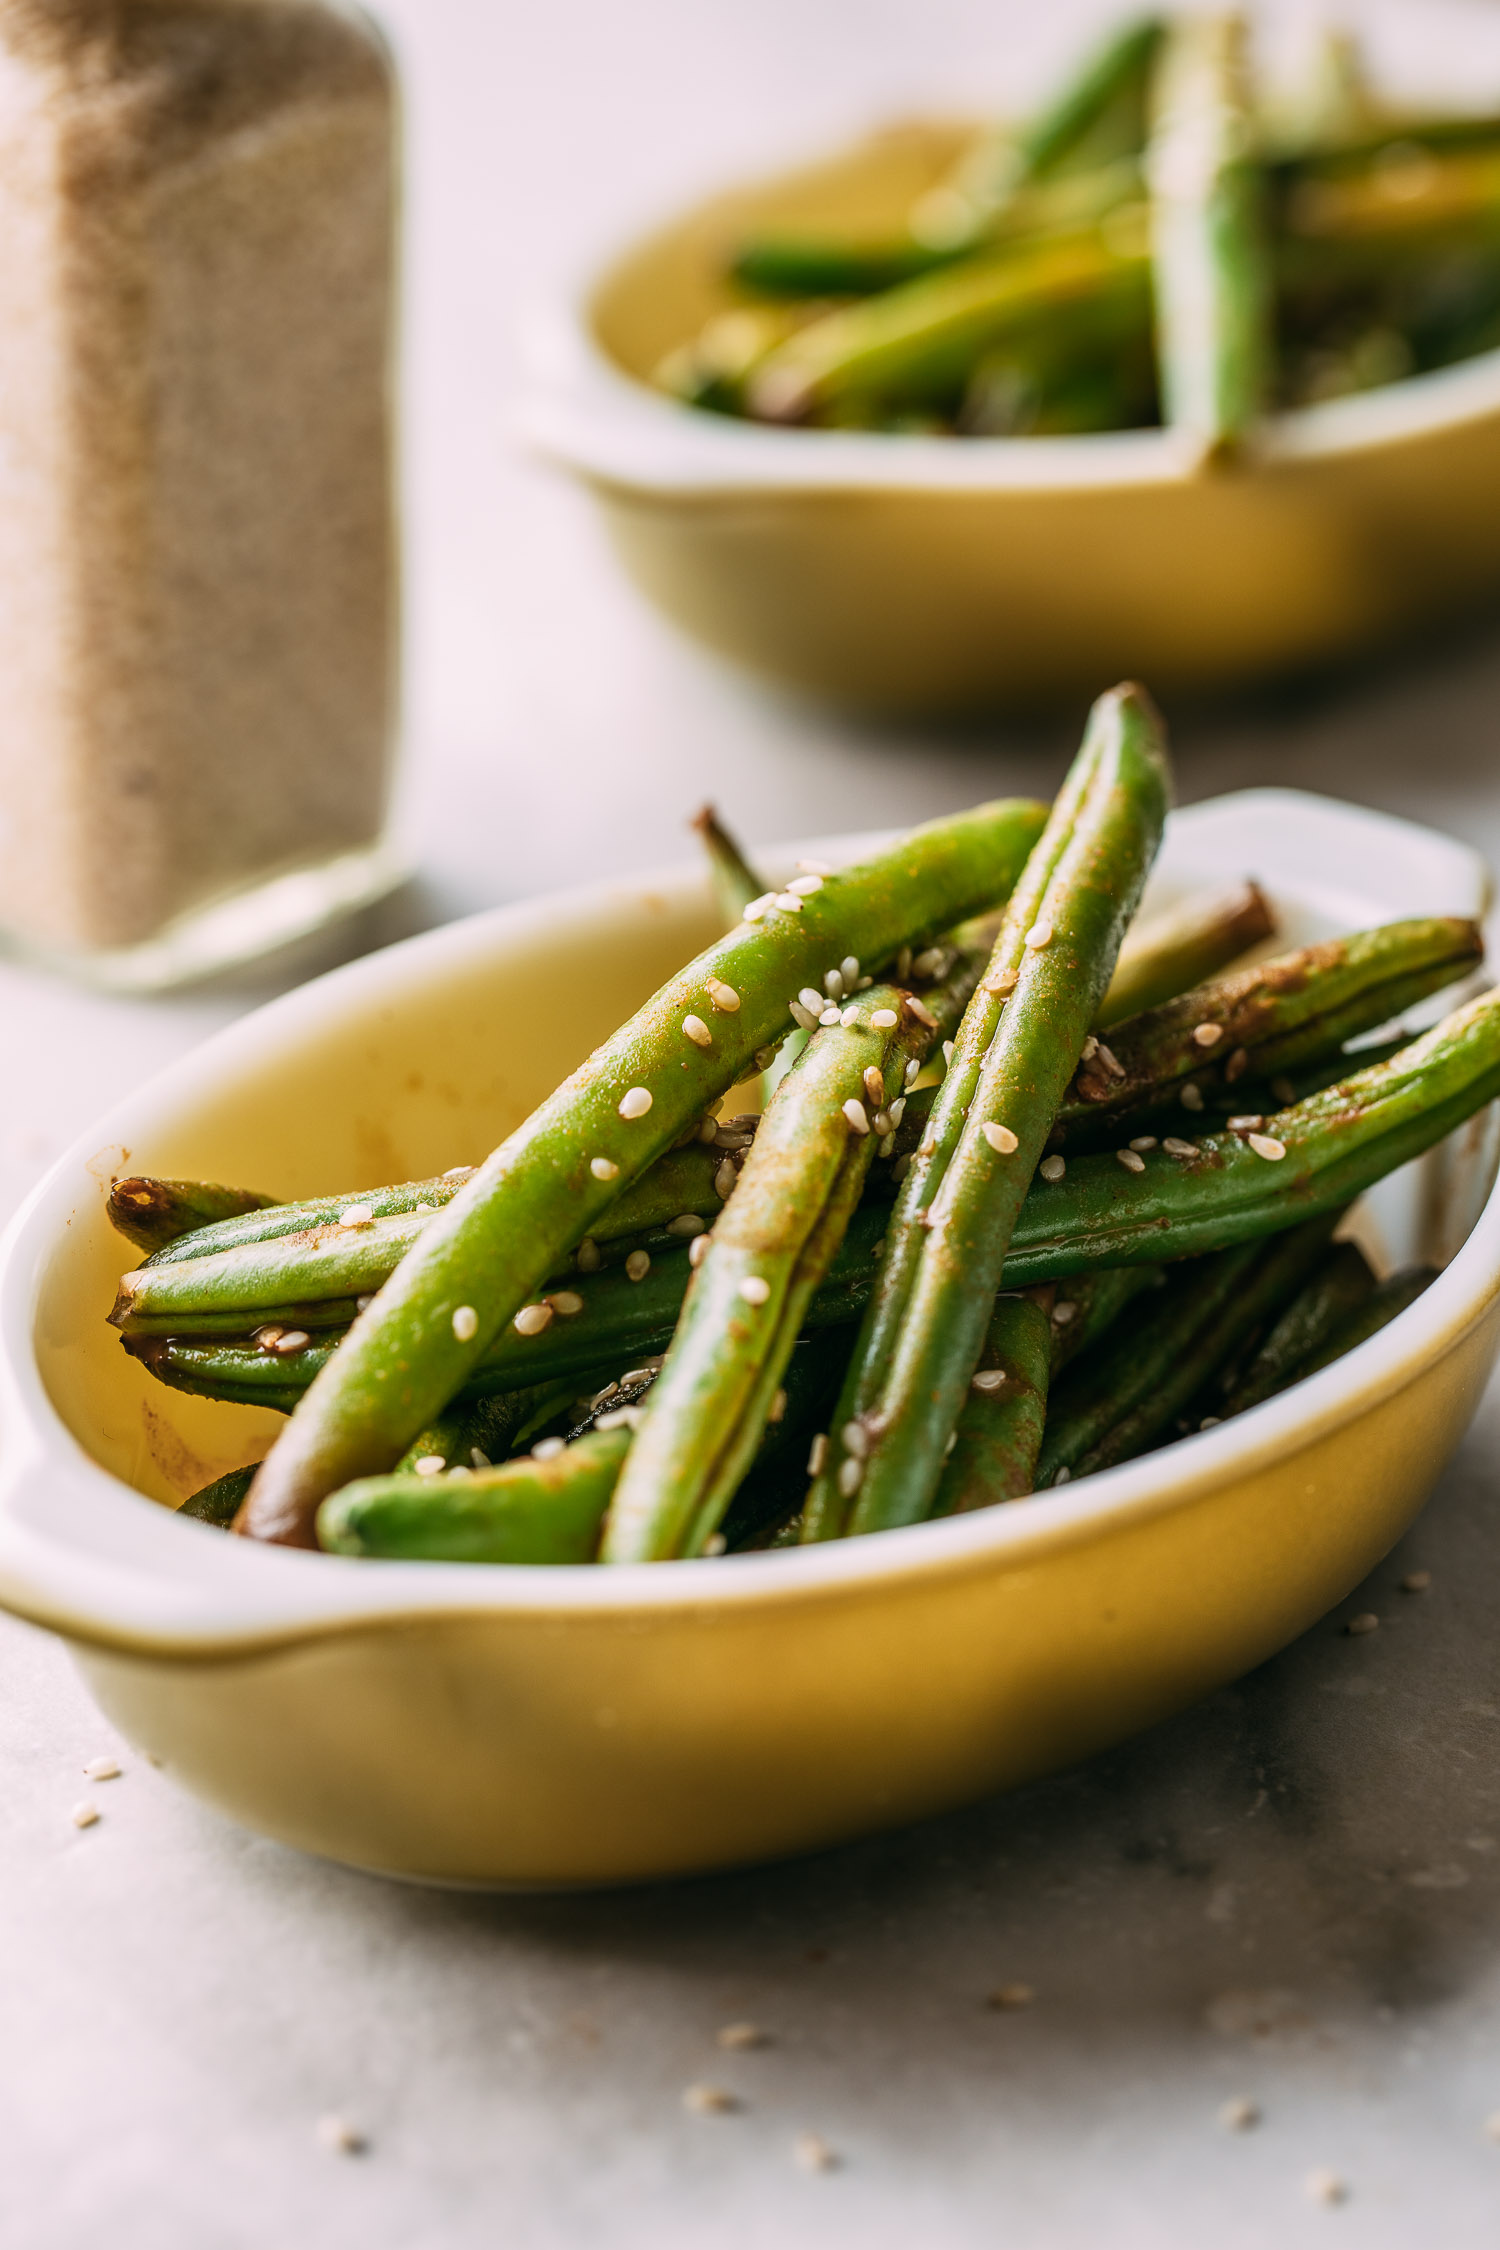 a glass jar of ground ginger sits between two oval serving dishes filled with broiled and pan cooked green string beans with sesame seed topping